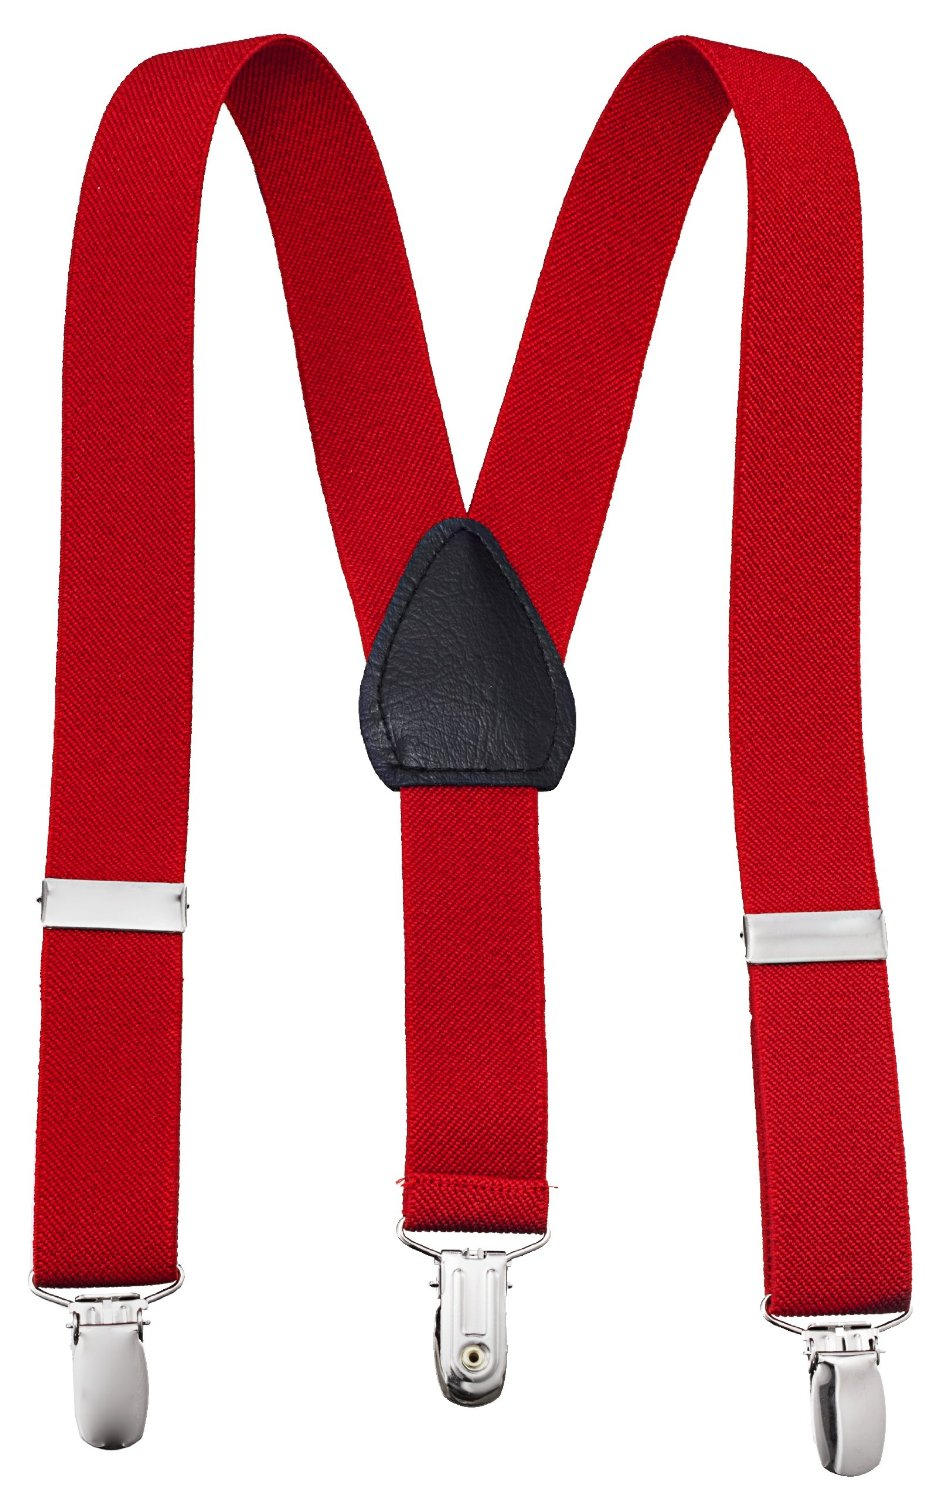 Shop for boys suspenders on ditilink.gq Free shipping and free returns on eligible items. Kids Suspenders Bowtie Set,Adjustable Suspender with Bow Tie for Boys and Girls. from $ 7 99 Prime. out of 5 stars LeCessoriz. Suspenders for Kids, Baby,Toddler, Boy and Girl.